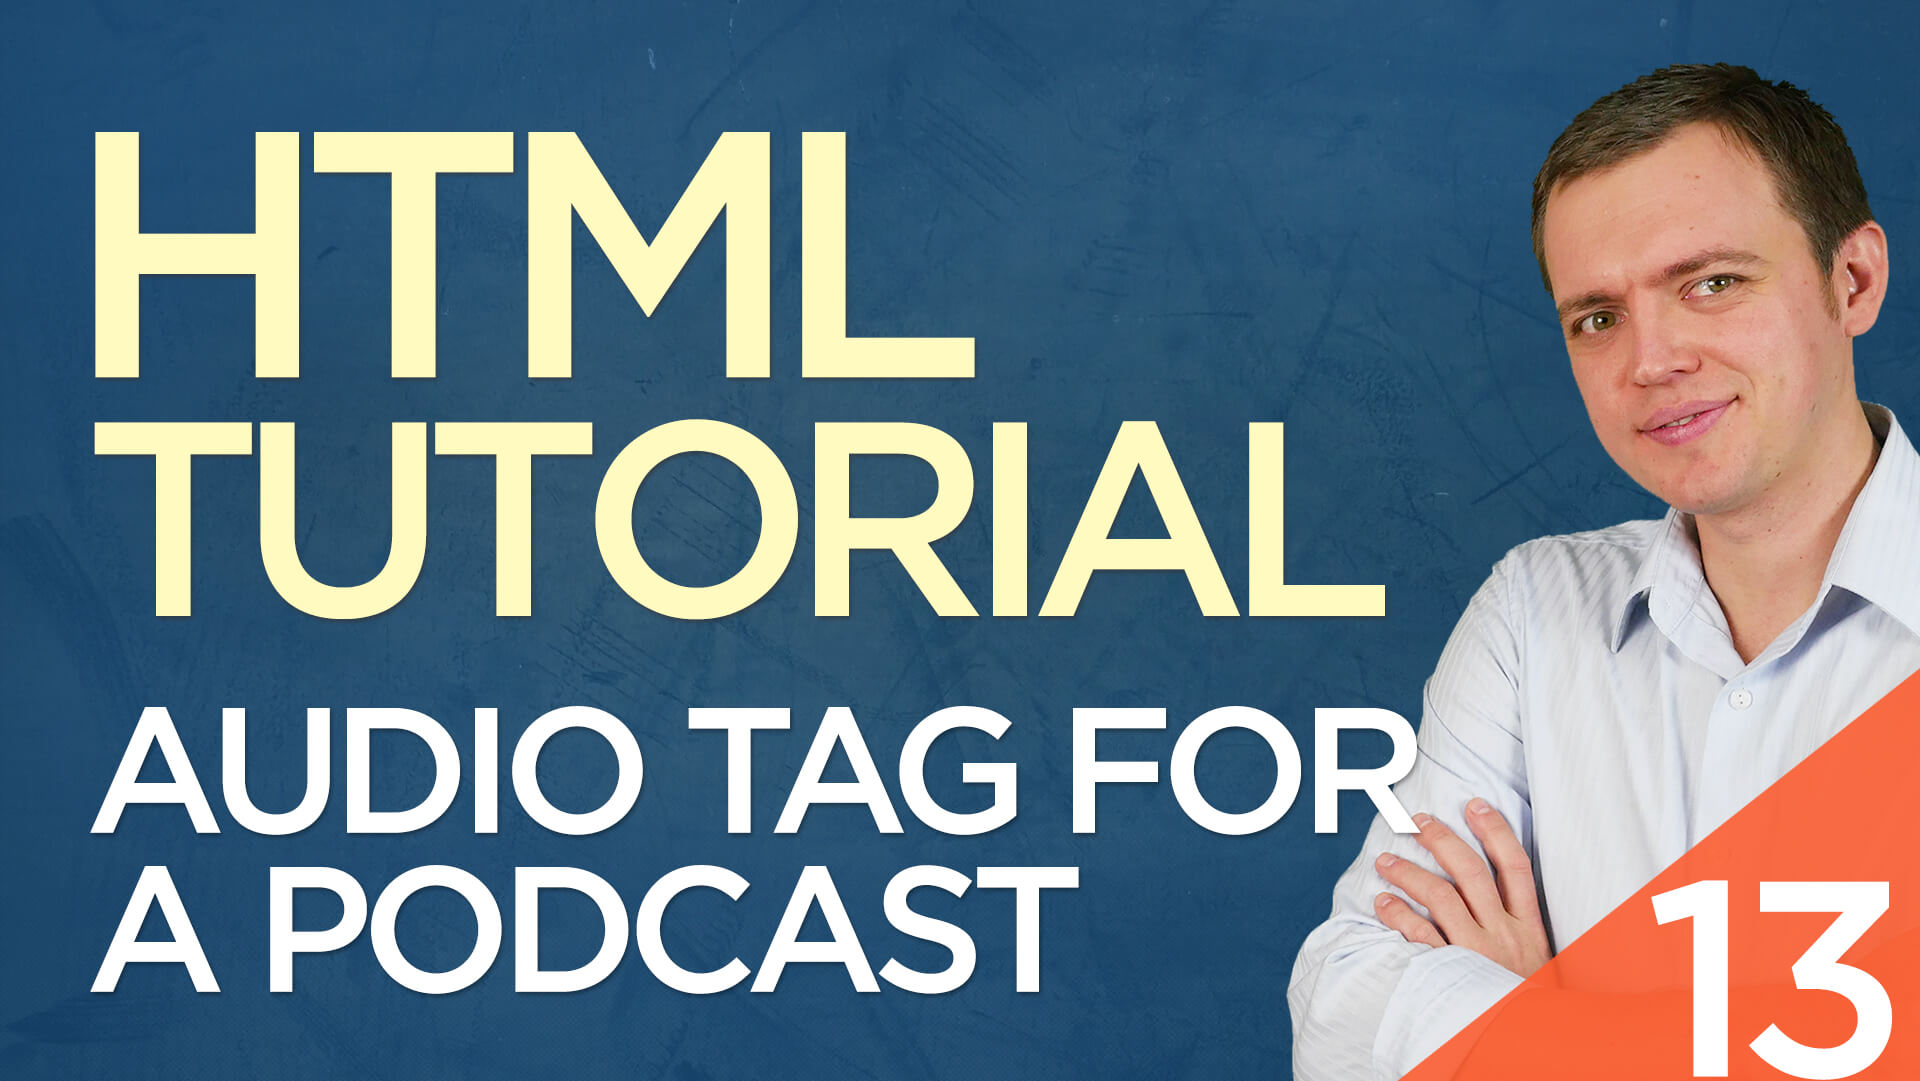 HTML Tutorial for Beginners: 13 Add an Audio Tag w/ HTML5 for Your Podcast